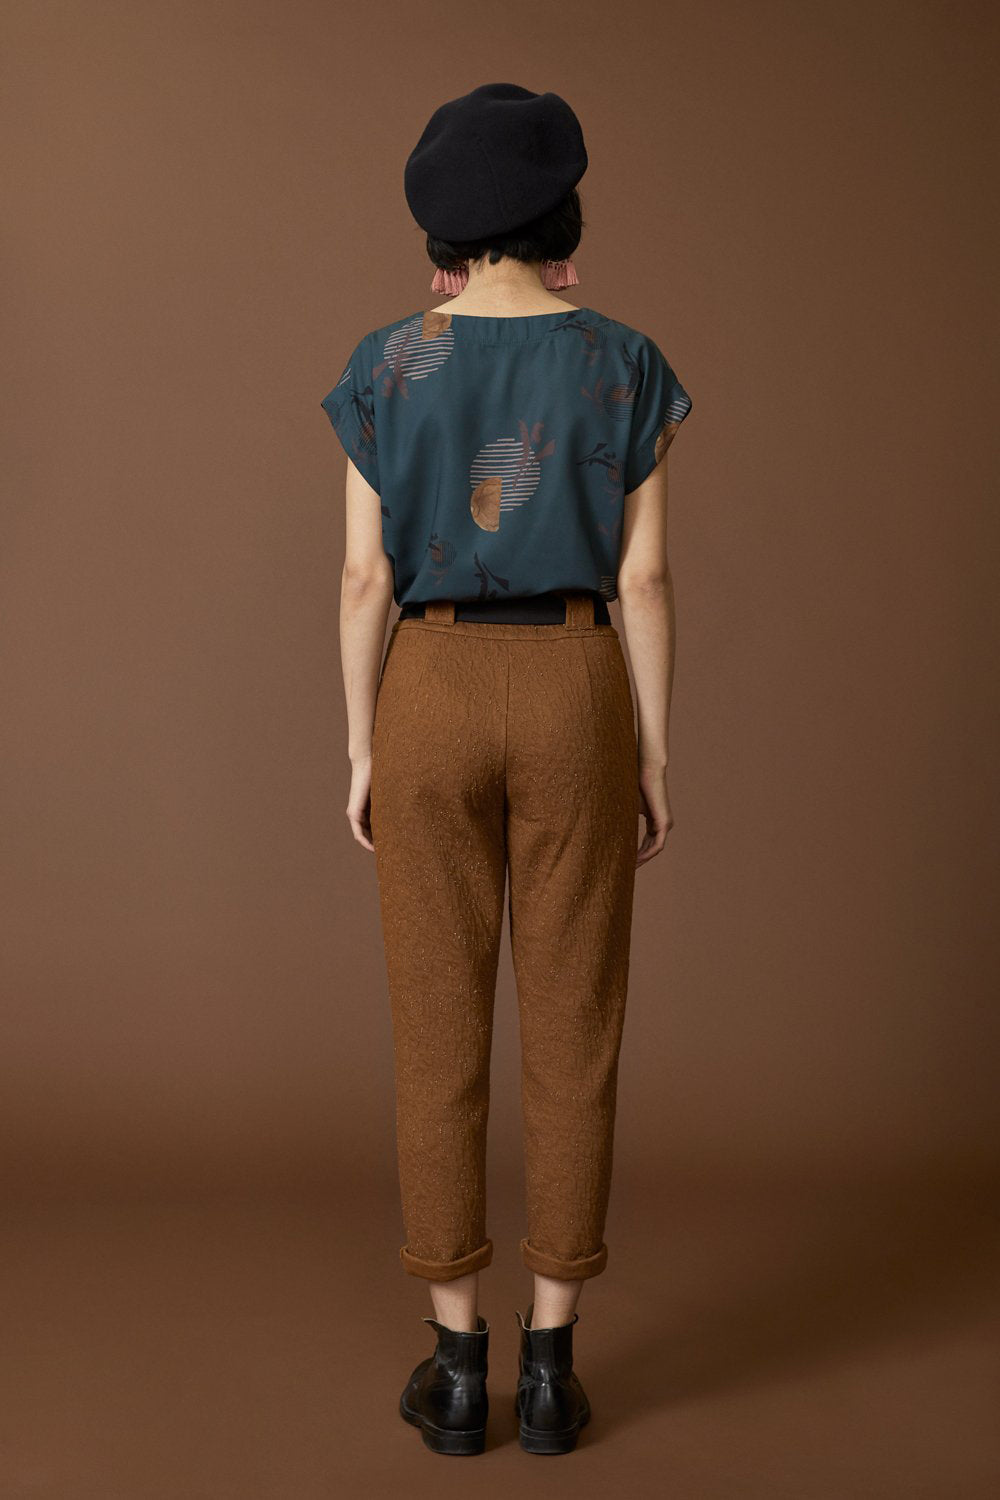 COKLUCH Paon Top in Teal styled with cinnamon pants FW2020/2021